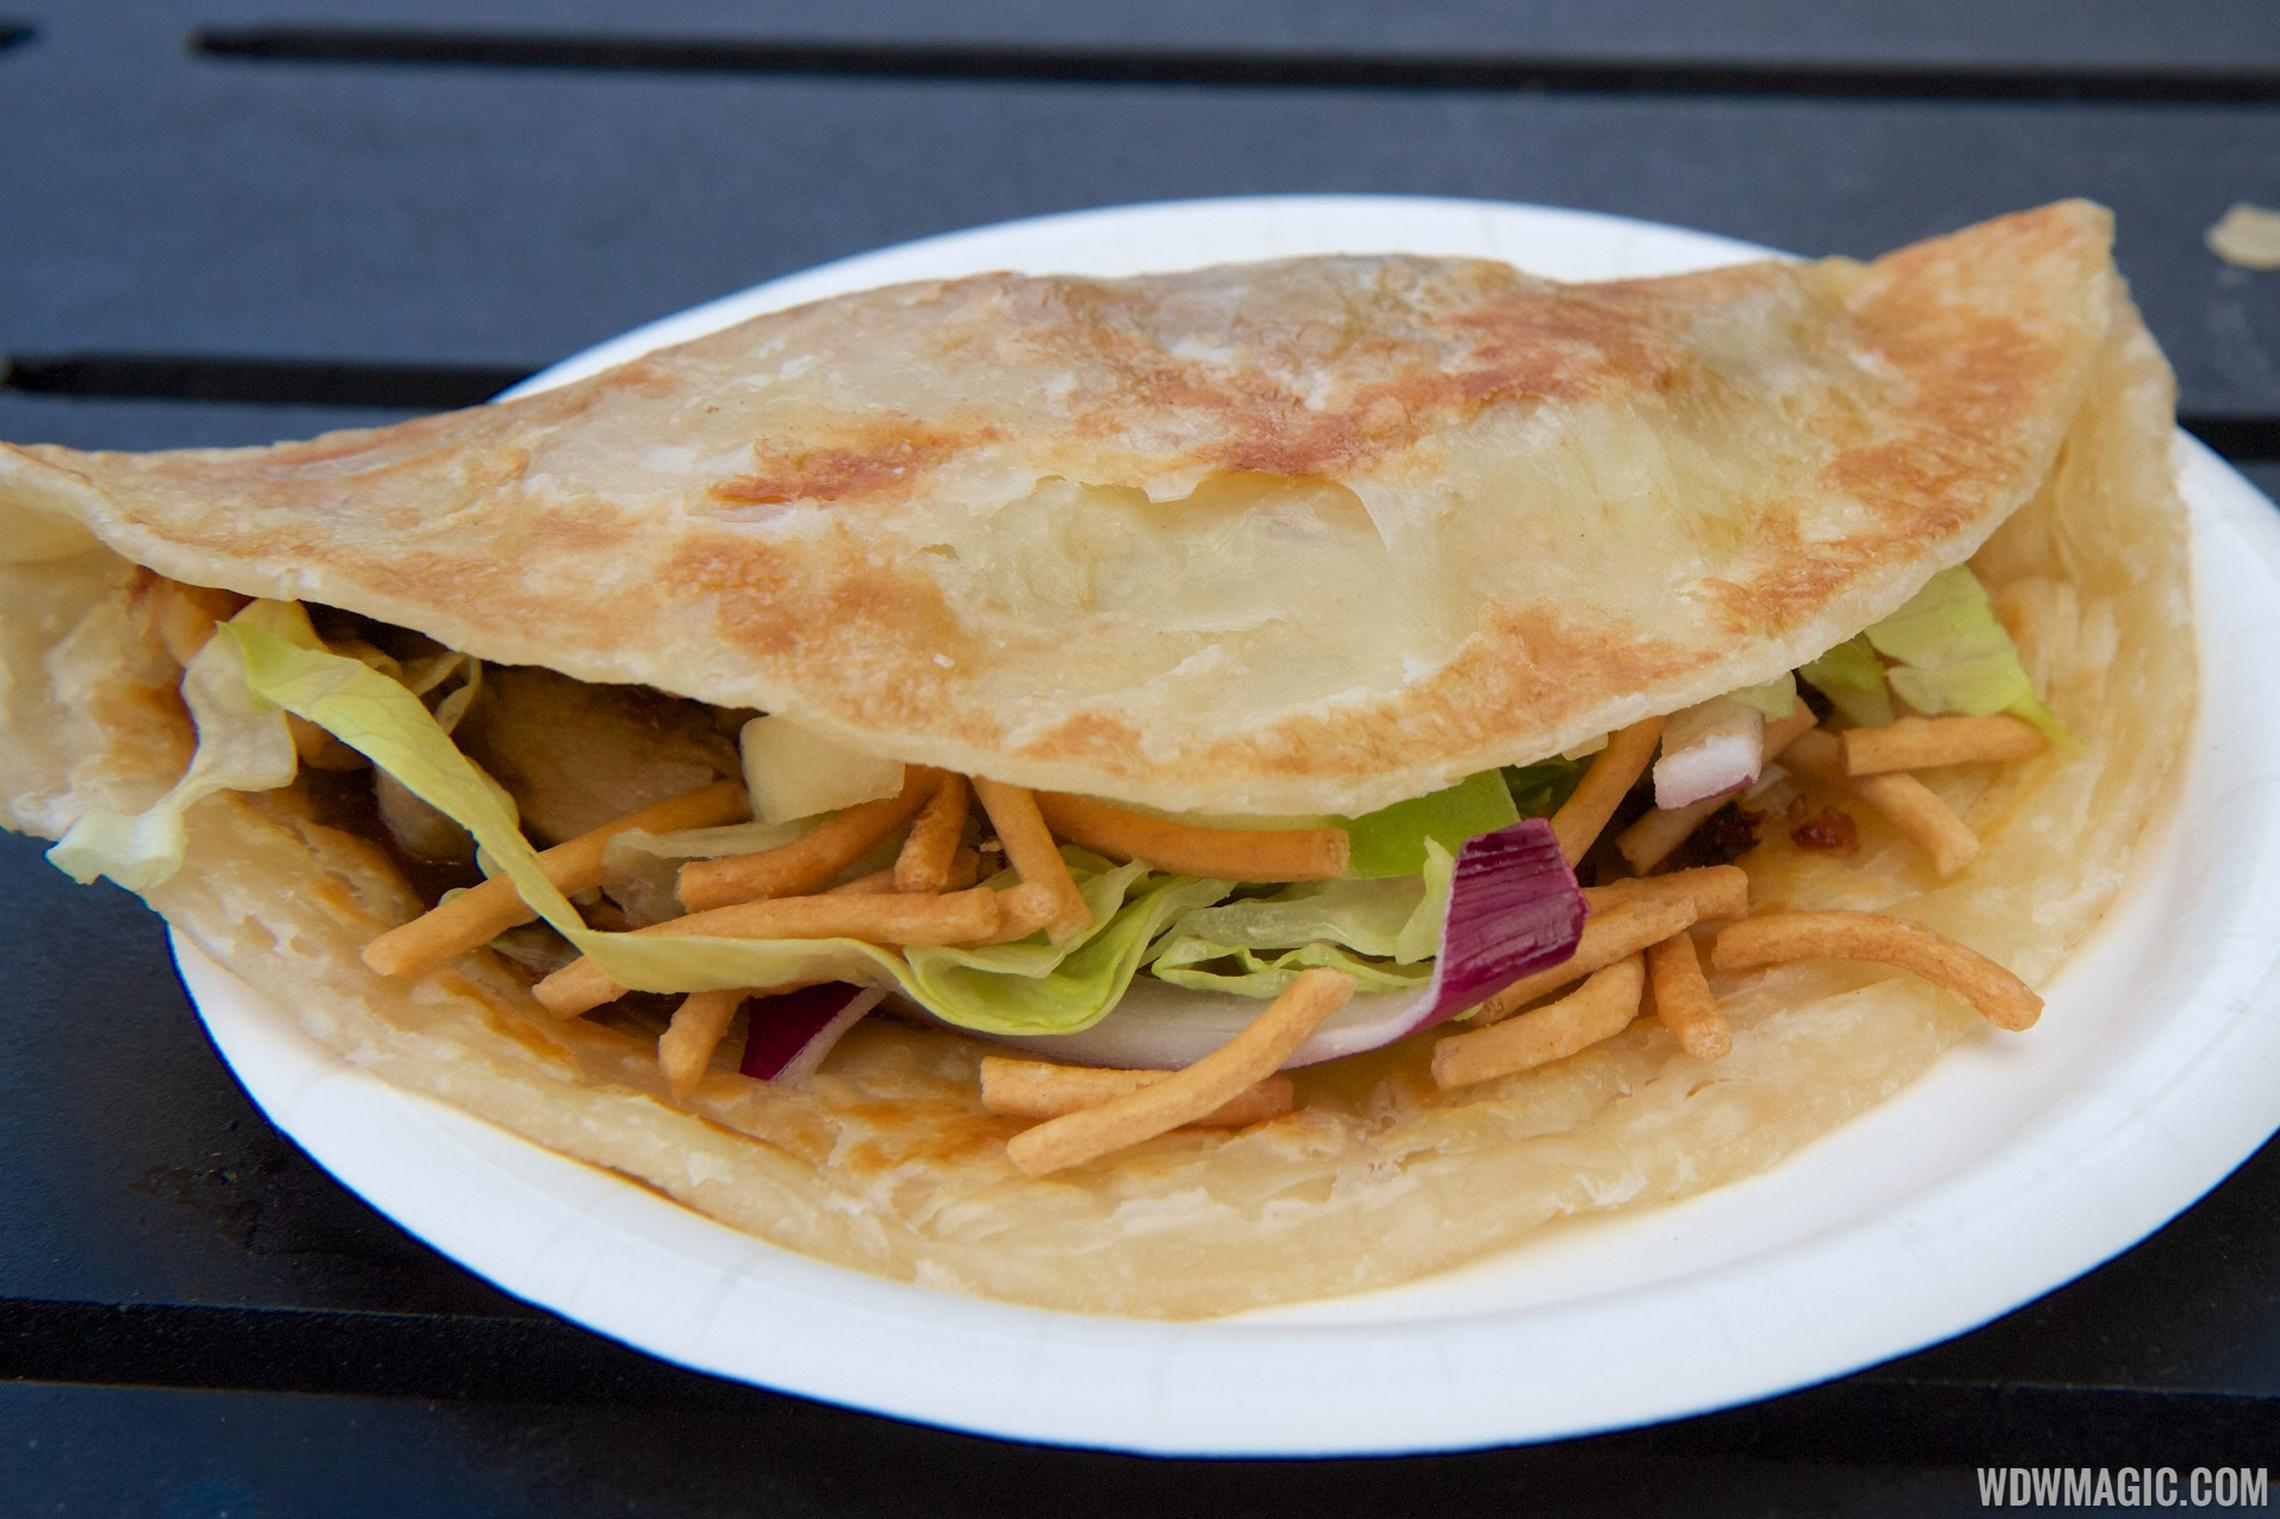 2014 Epcot Flower and Garden Festival Outdoor Kitchen kiosk - Lotus House China - Spring Pancake $5.25